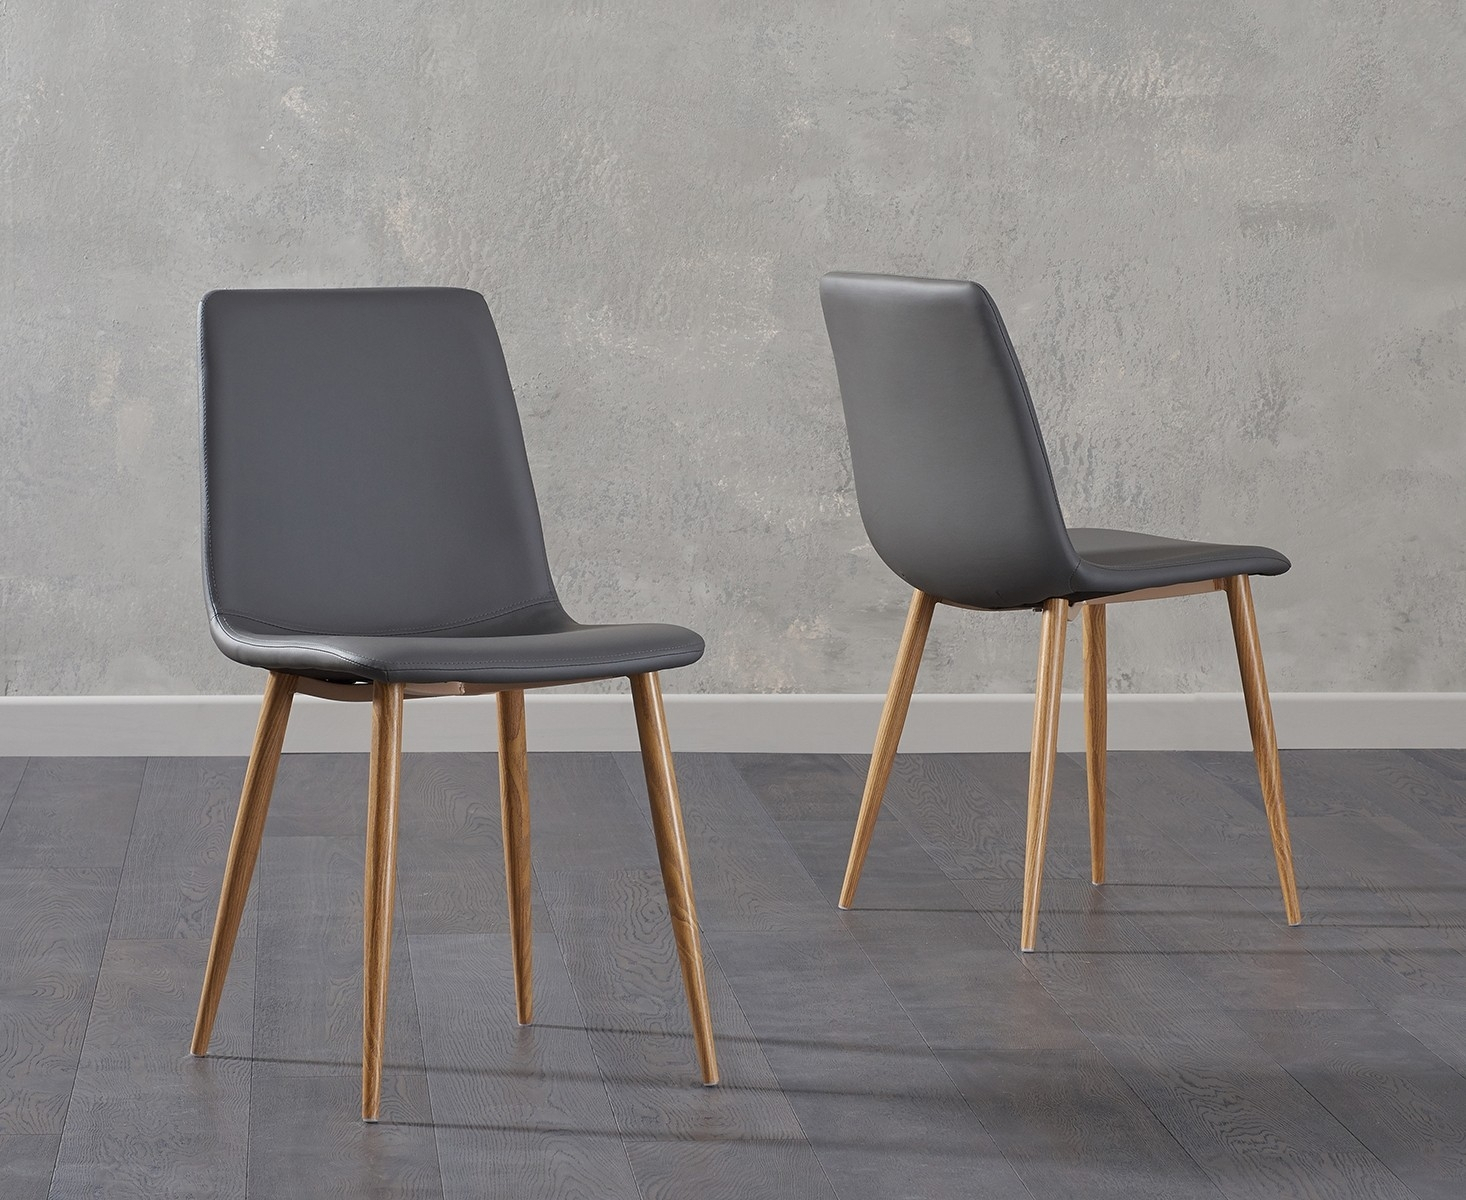 Mark Harris Hatfield Grey Faux Leather Dining Chair With Wooden Legs (Pair) – Cfs Furniture Uk With Carlton Wood Leg Upholstered Dining Chairs (View 11 of 15)